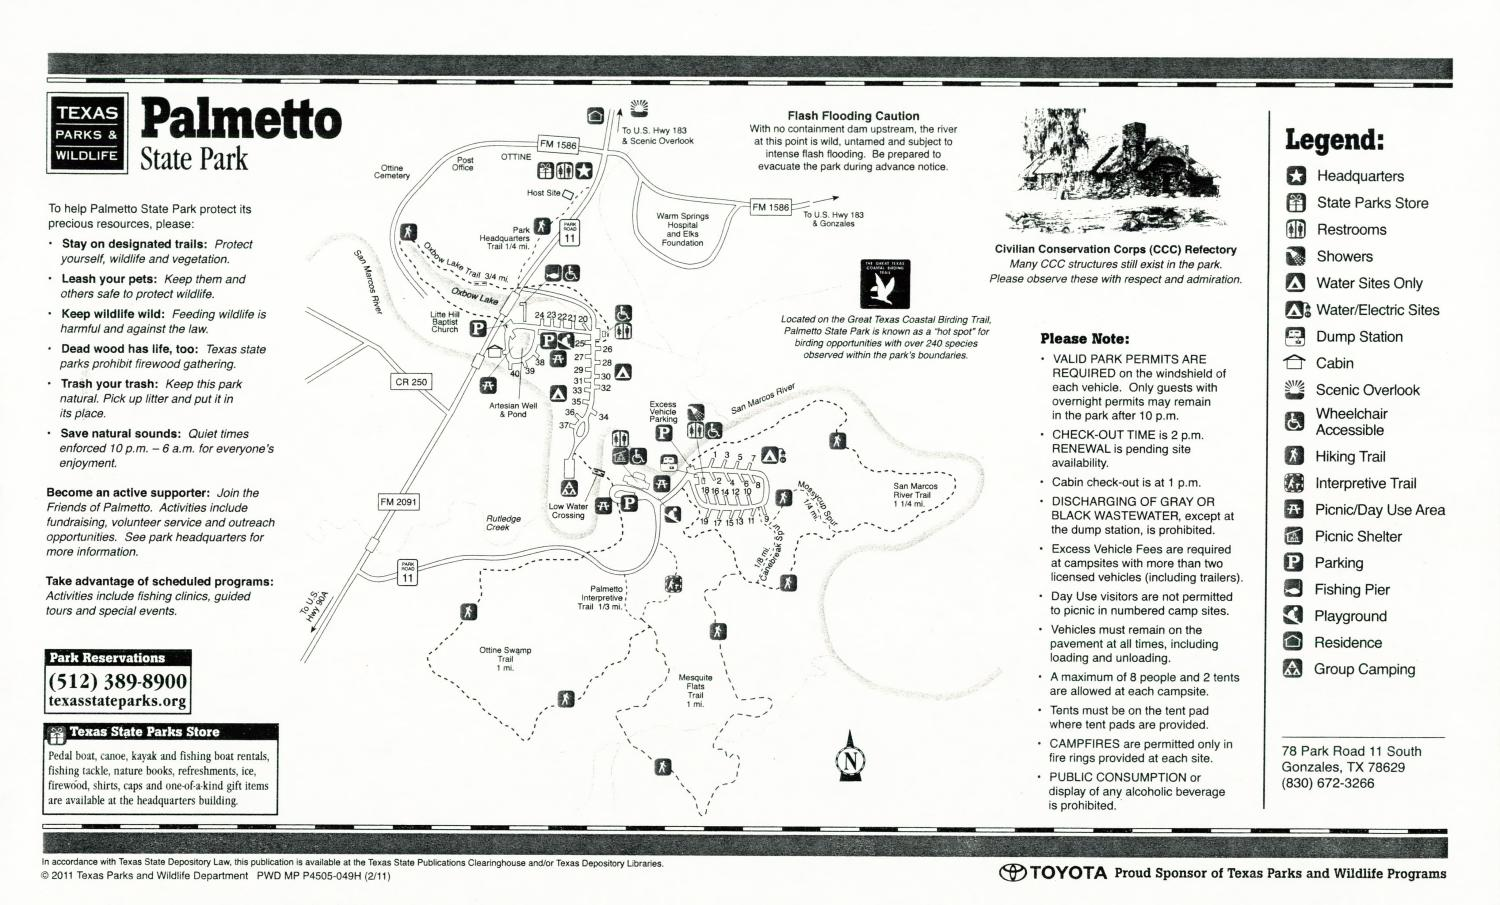 Palmetto State Park, Map of the Palmetto State Park outlining hiking trails and highlighting activities, facilities, and other features such as bathrooms, lodgings, water/electric, etc. It also contains general information for the park and for the Texas Parks and Wildlife Department. Additionally, there are various advertisements, including one with information about the Texas State Parks Pass.,